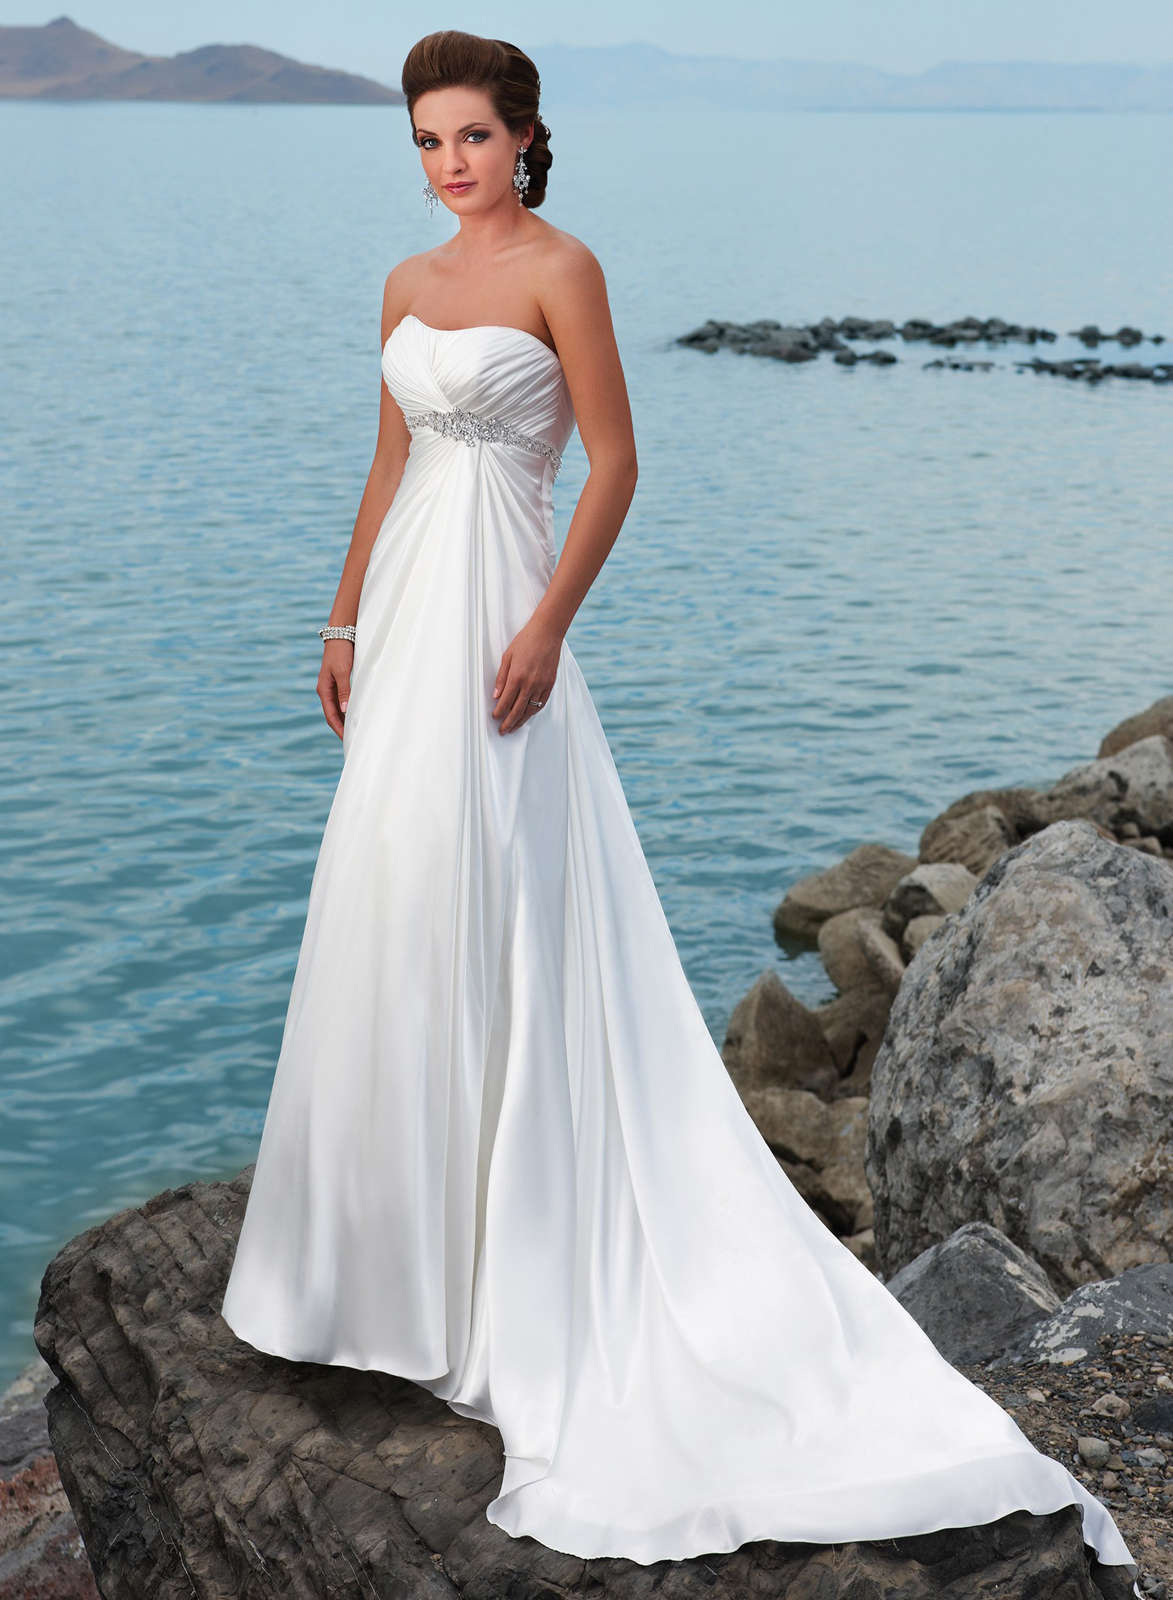 Strapless Beach Wedding Dresses | Fashion Gallery